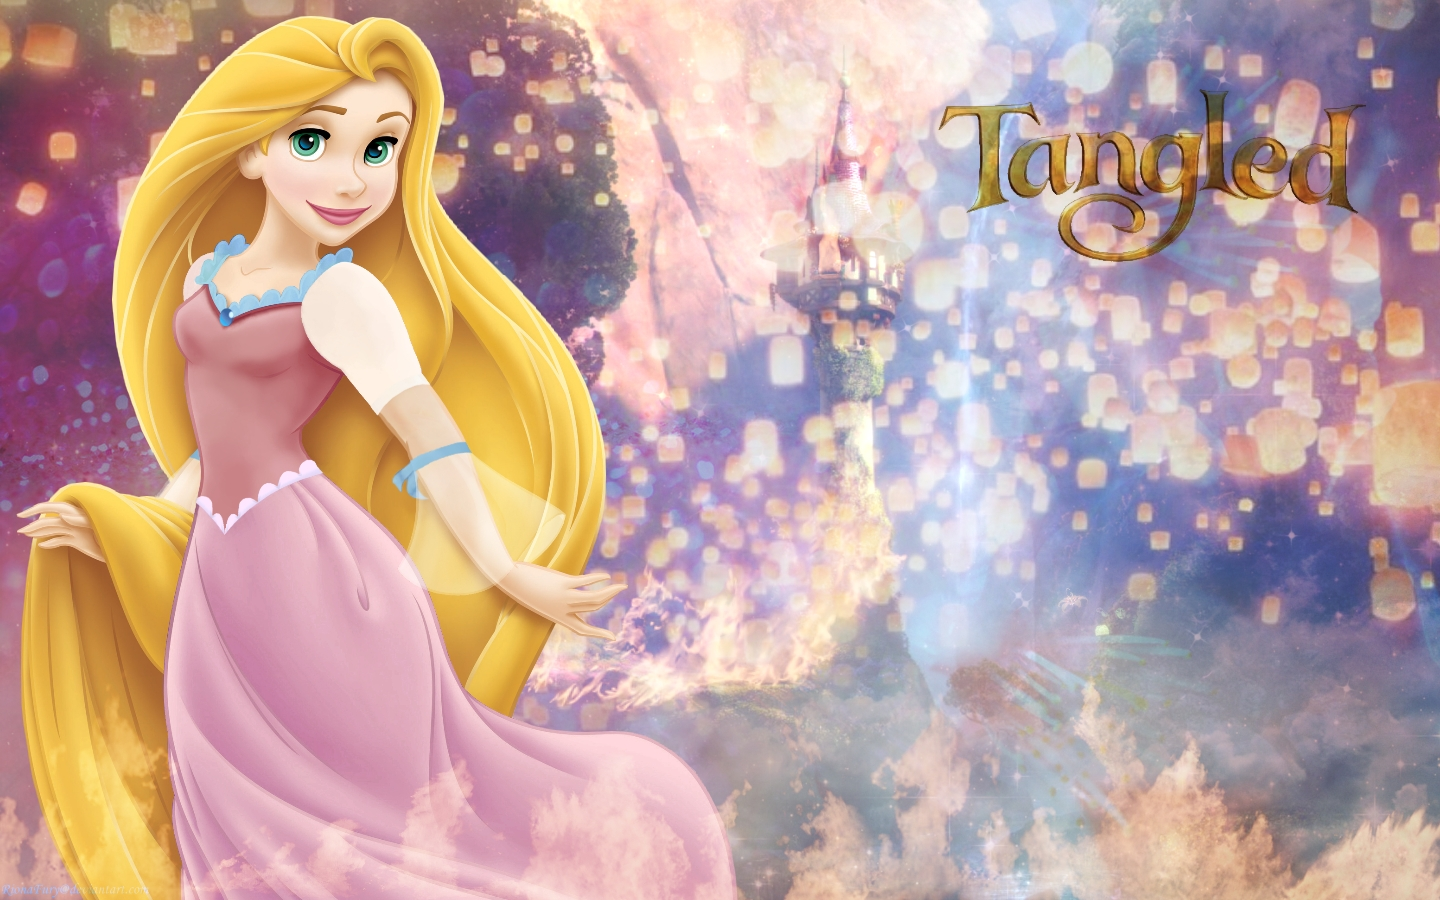 rapunzel's tower - disney princess wallpaper (33104742) - fanpop